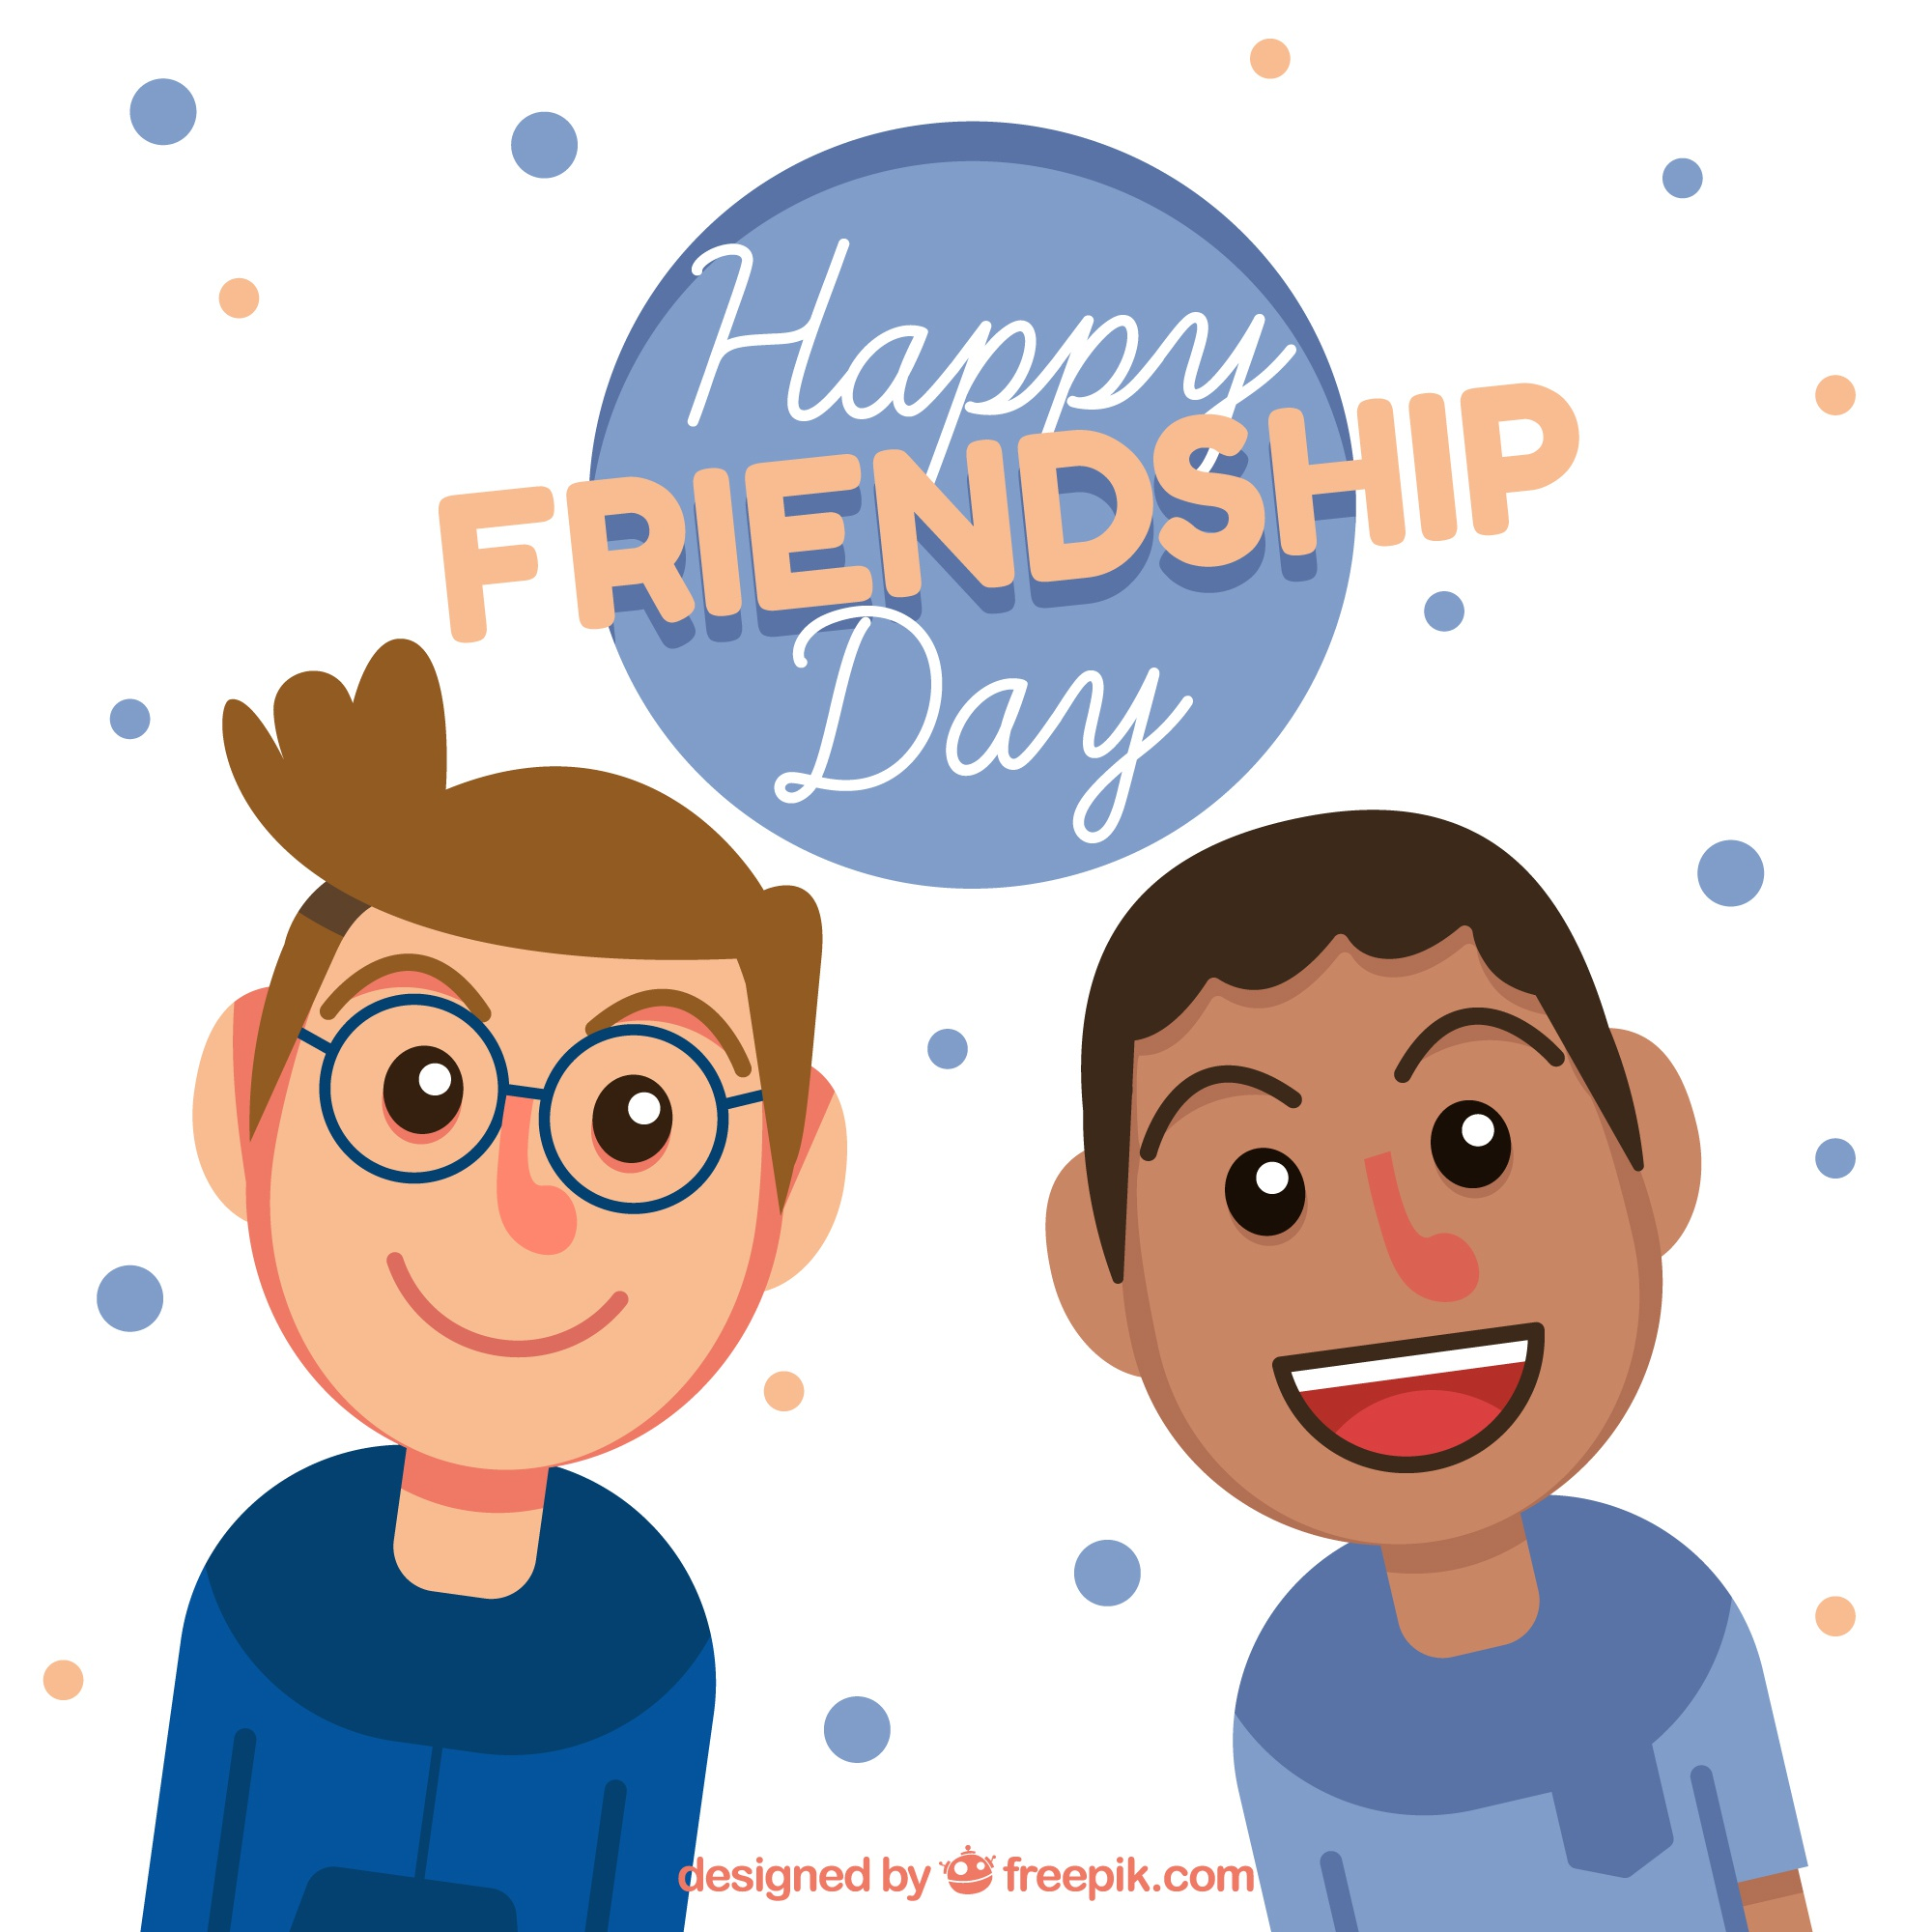 Friendship day background with two boys